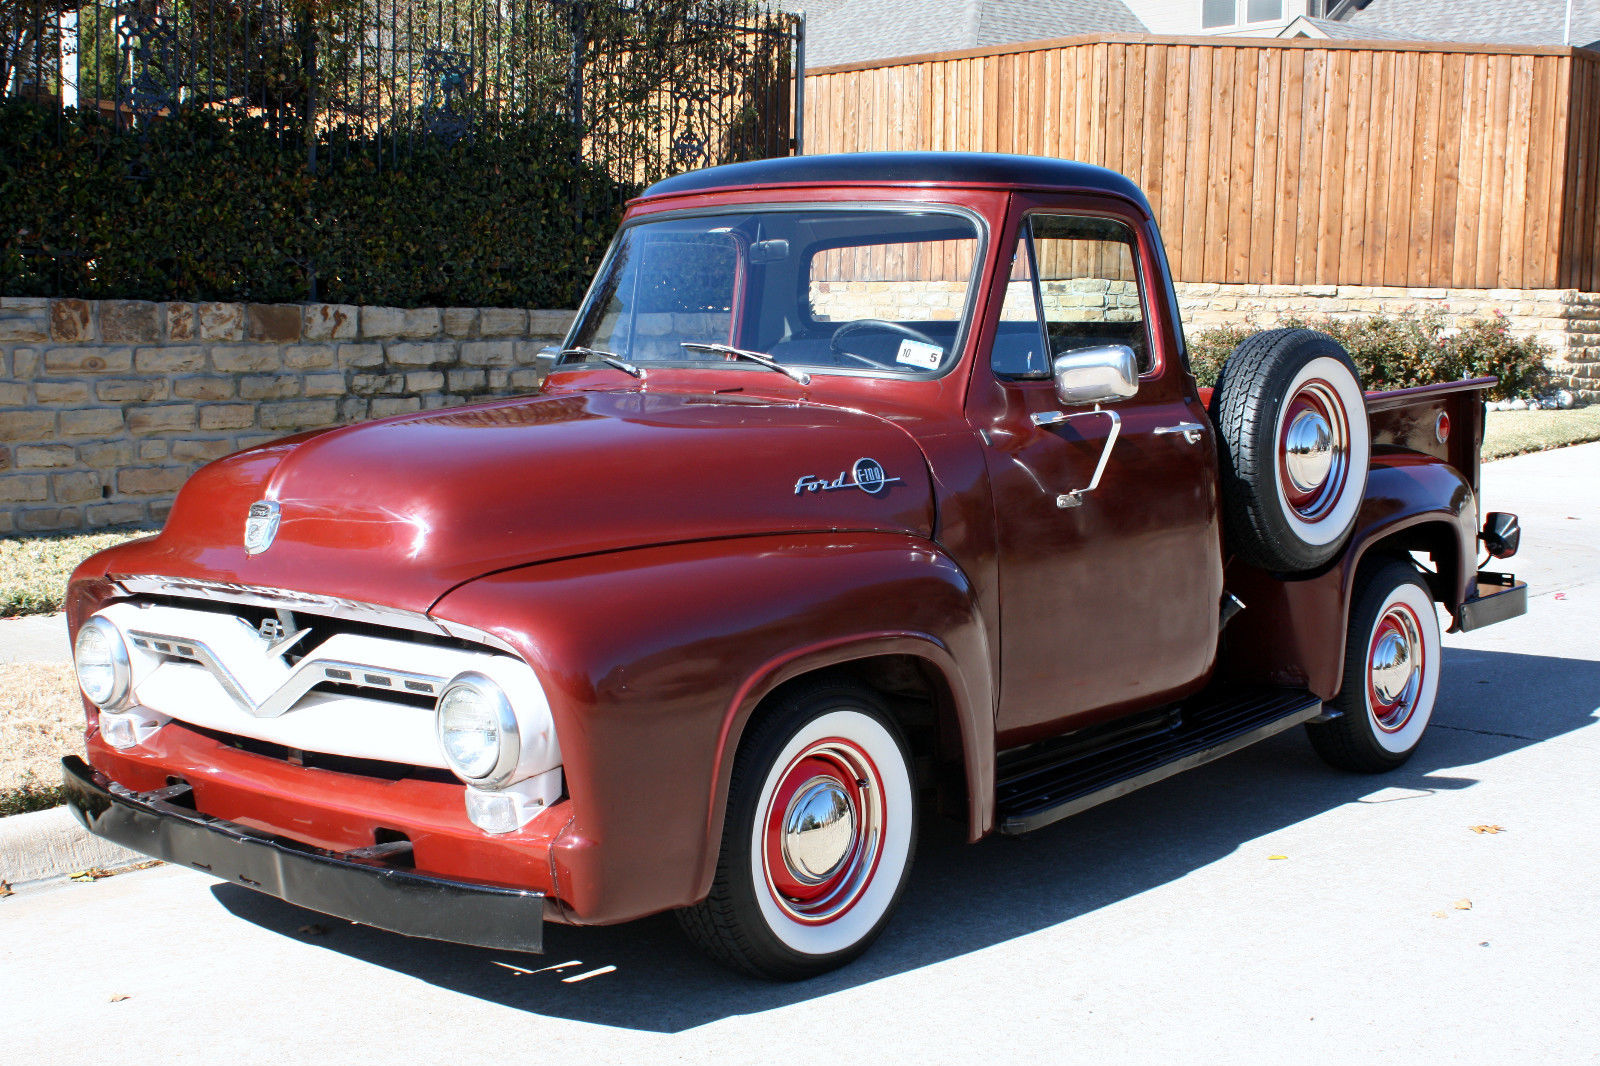 1955 Ford F 100 With A 239 Y Block And 3 Speed Column Shift F100 Show Trucks